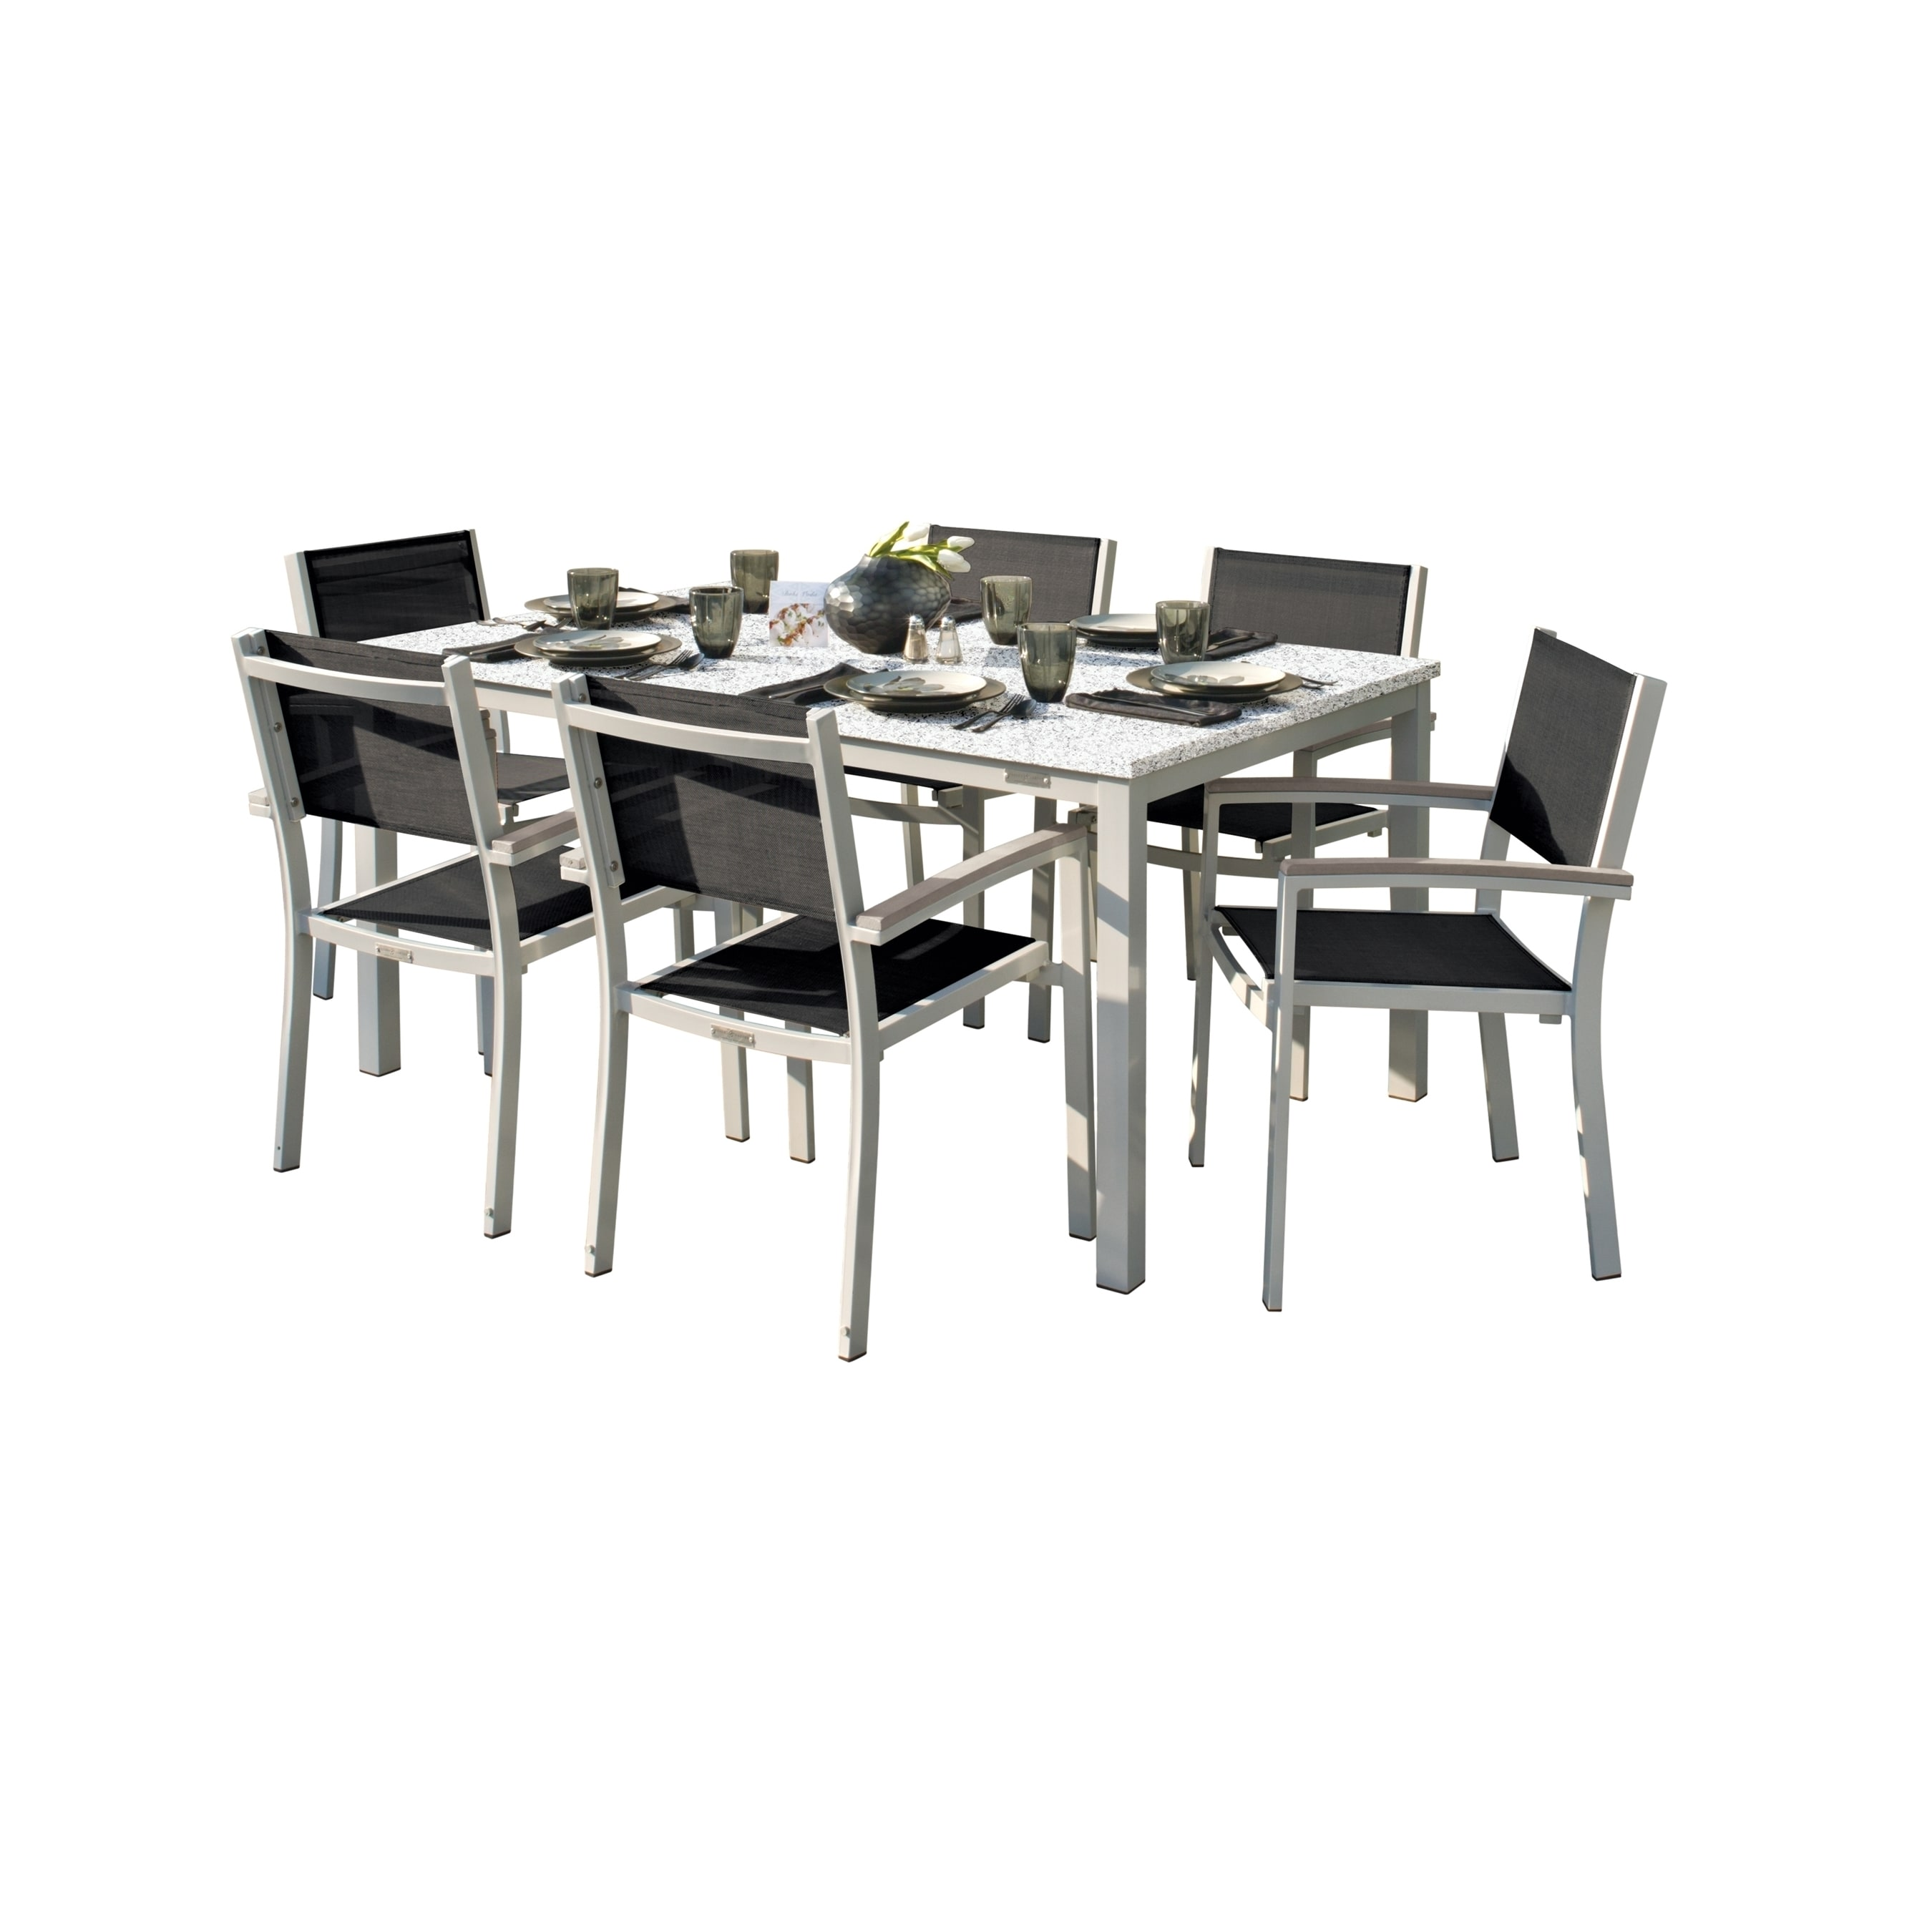 Shop oxford garden travira 7 piece dining set with 63 in x 40 in lite core ash table tekwood vintage black sling free shipping today overstock